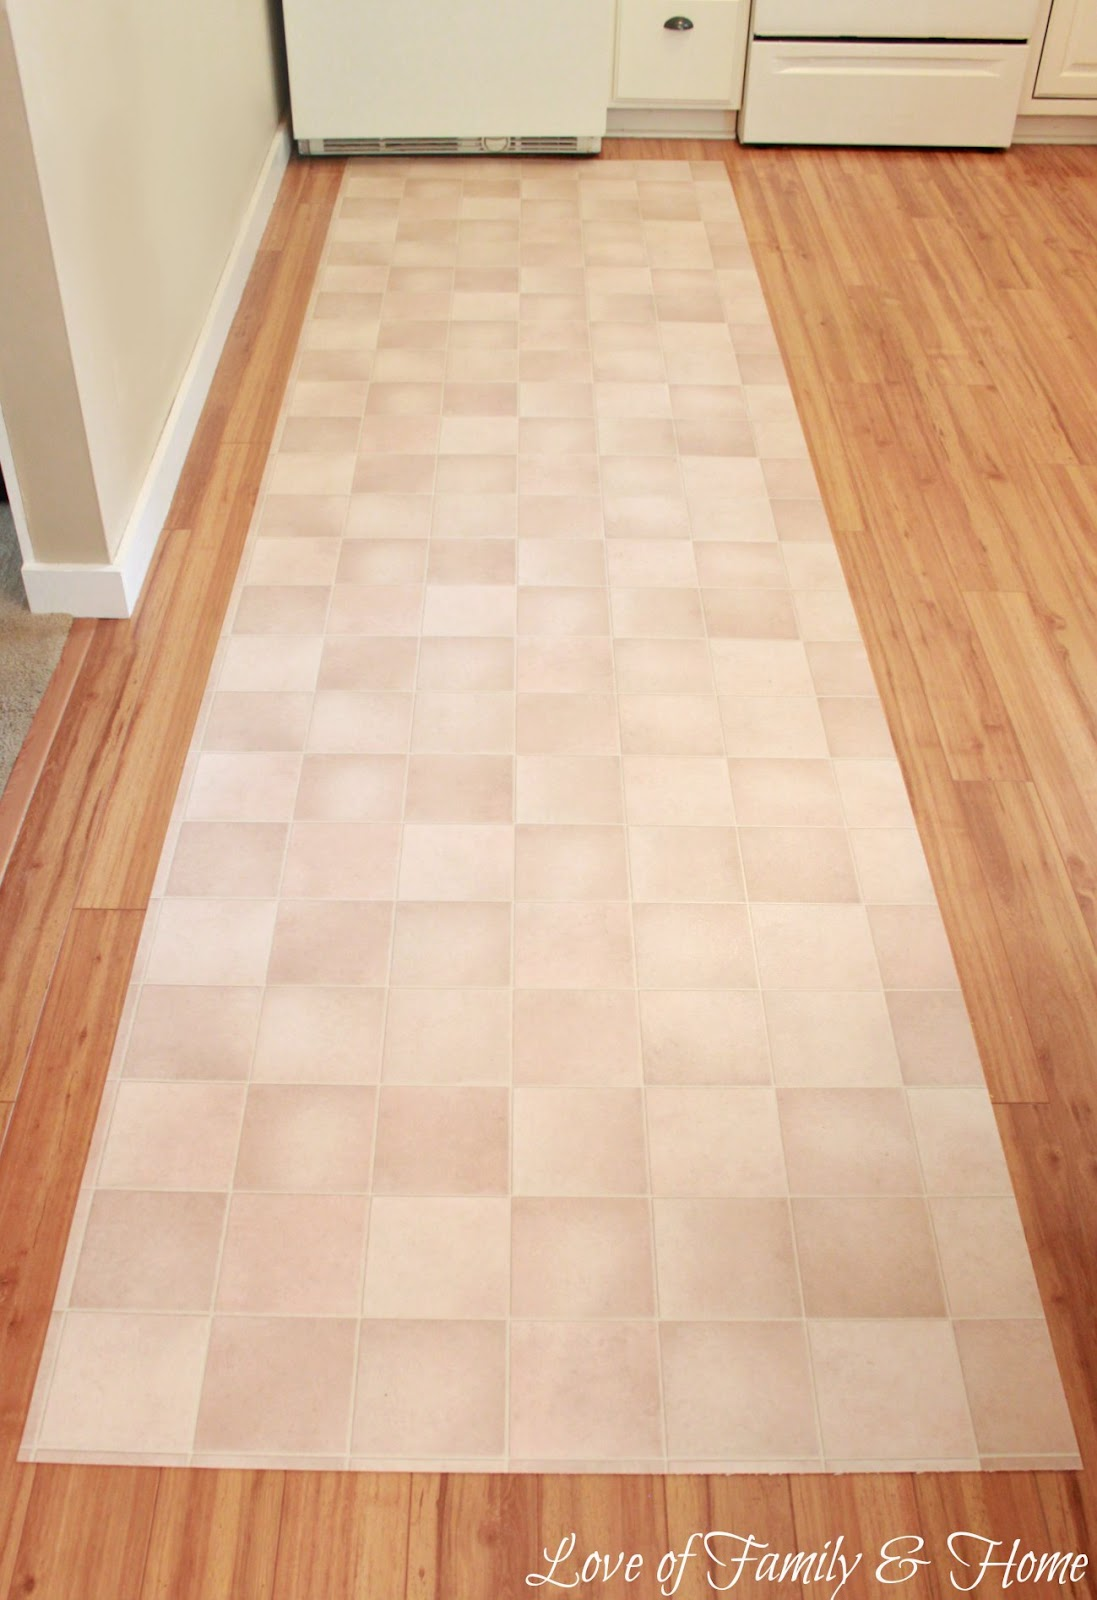 Linoleum Flooring Lowes >> How To Paint A Rug Using Vinyl Flooring.... - Love of Family & Home